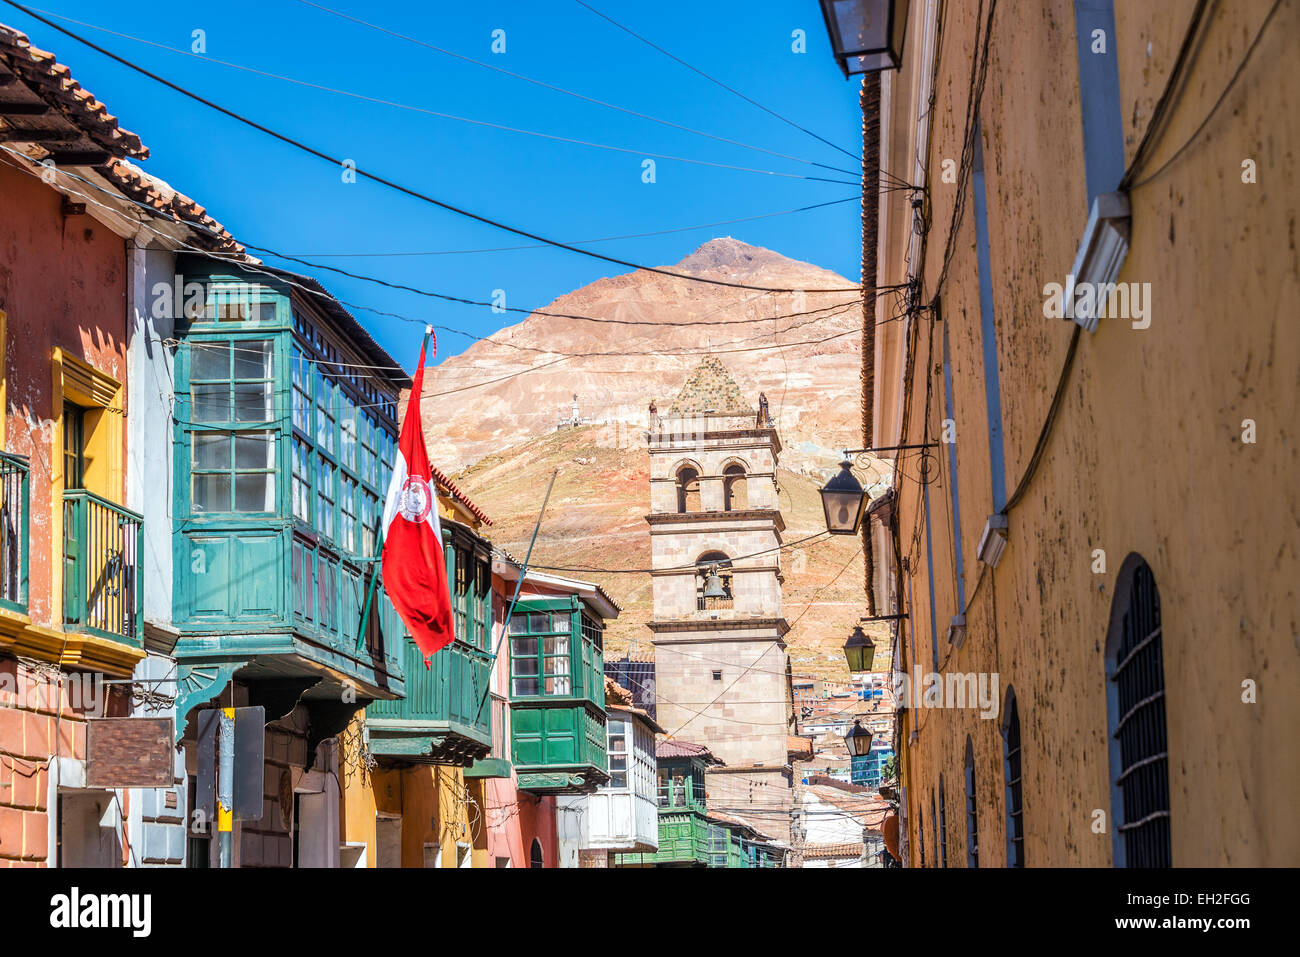 Looking down a street in the historic center of Potosi, Bolivia with the Cerror Rico in the background - Stock Image